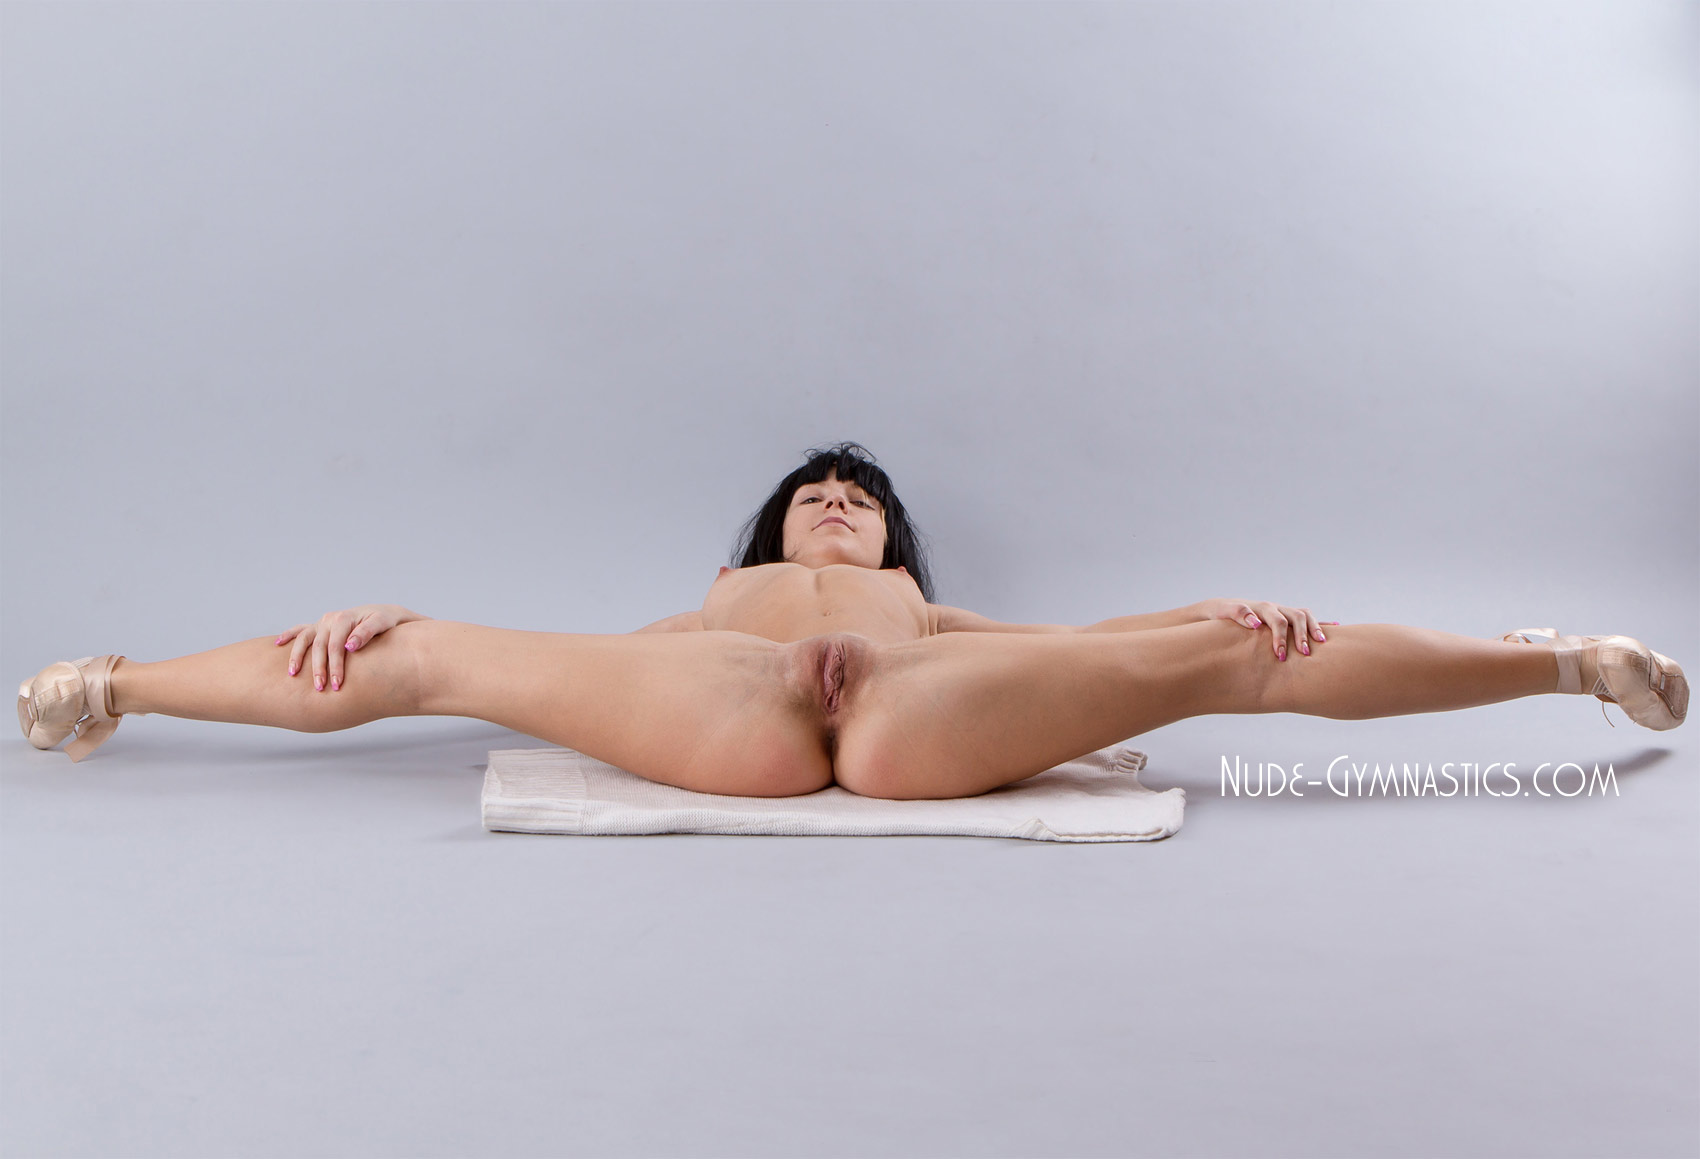 Gymnastic nudes videos